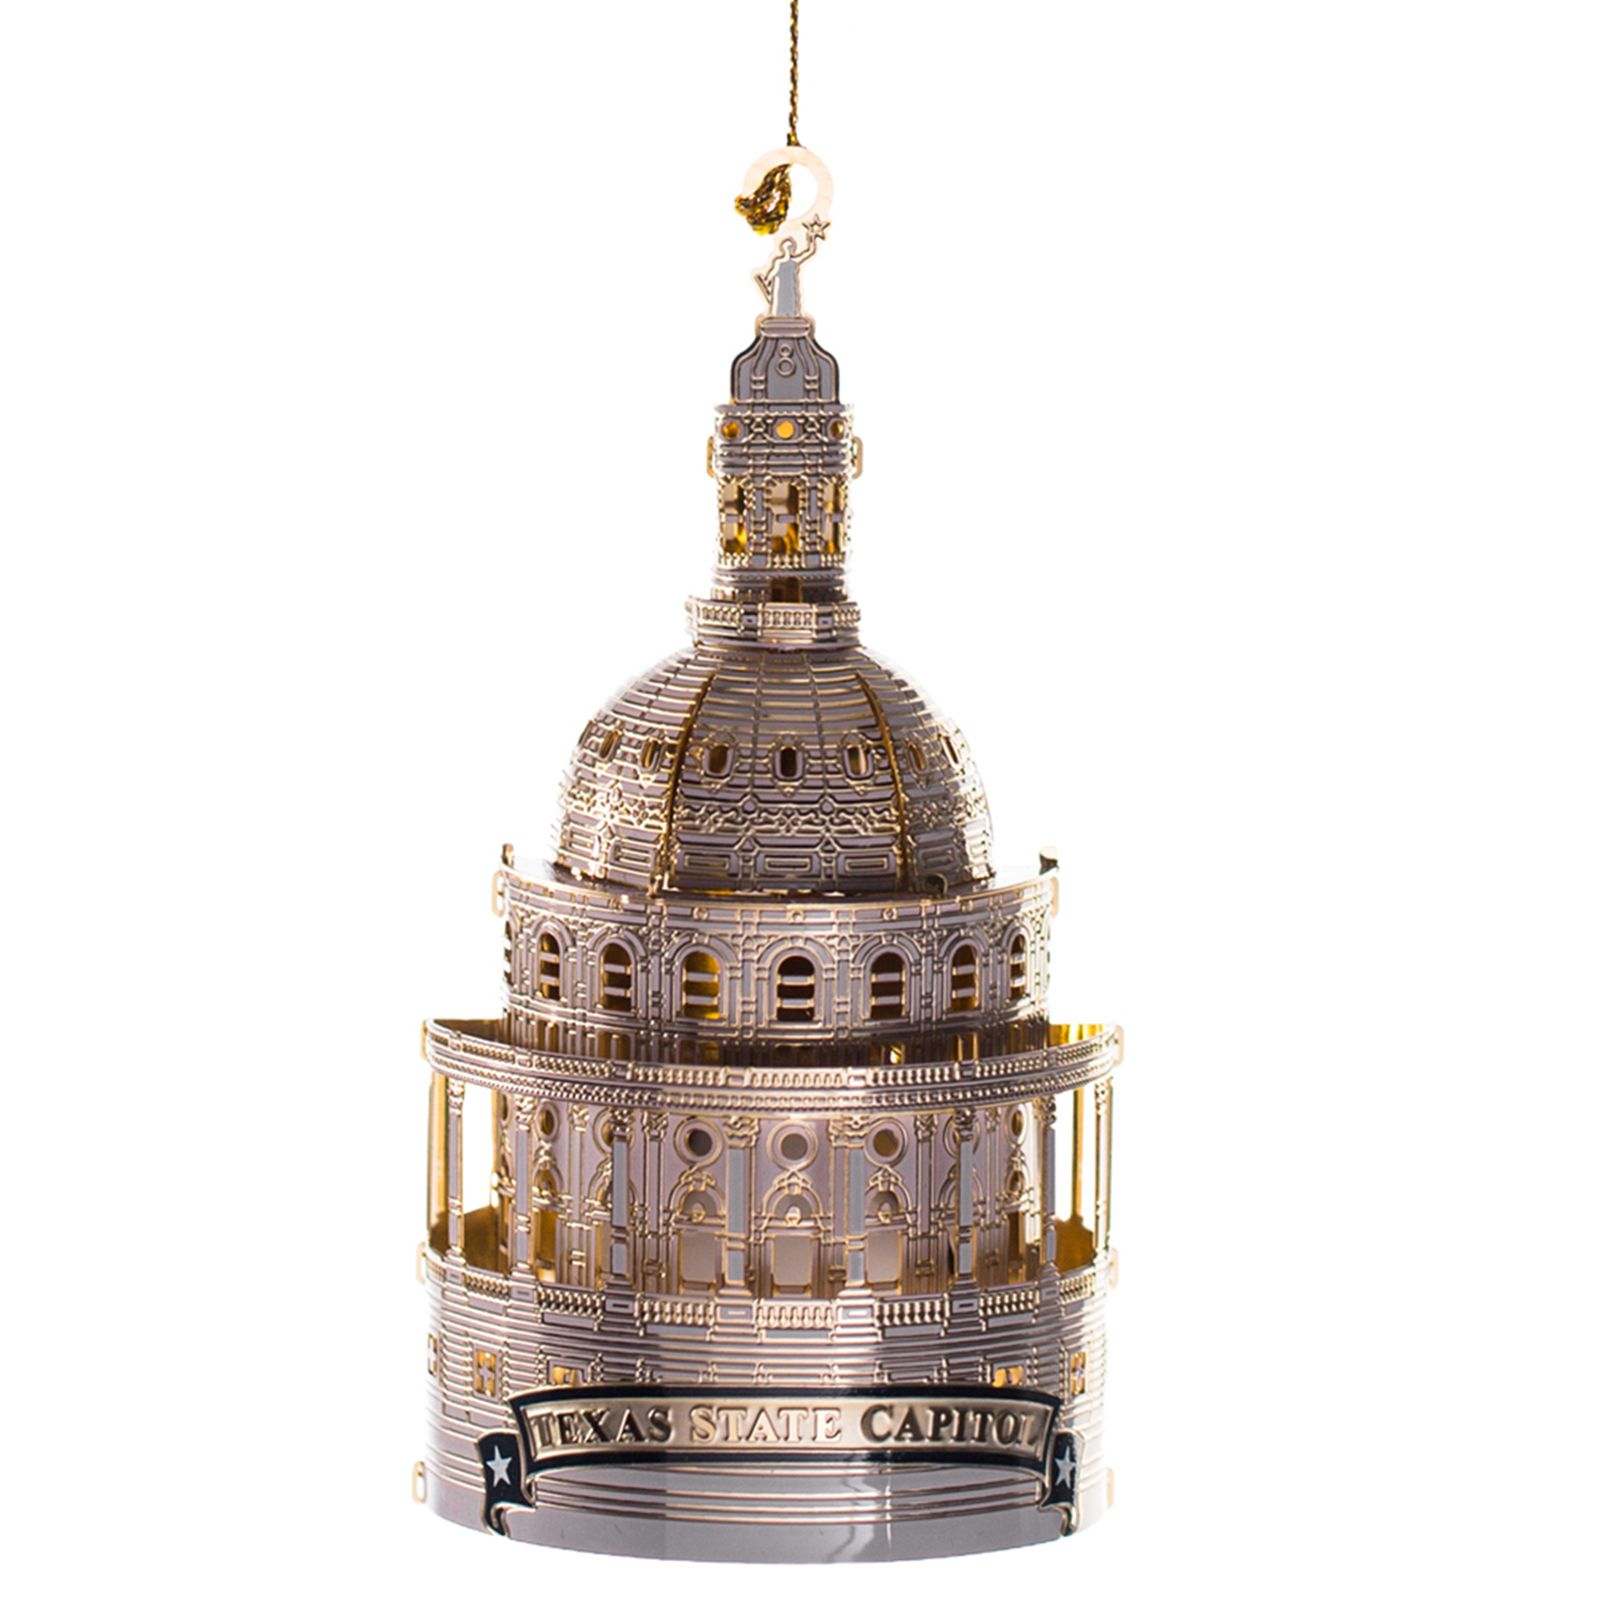 Capitol Dome Lighted Ornament